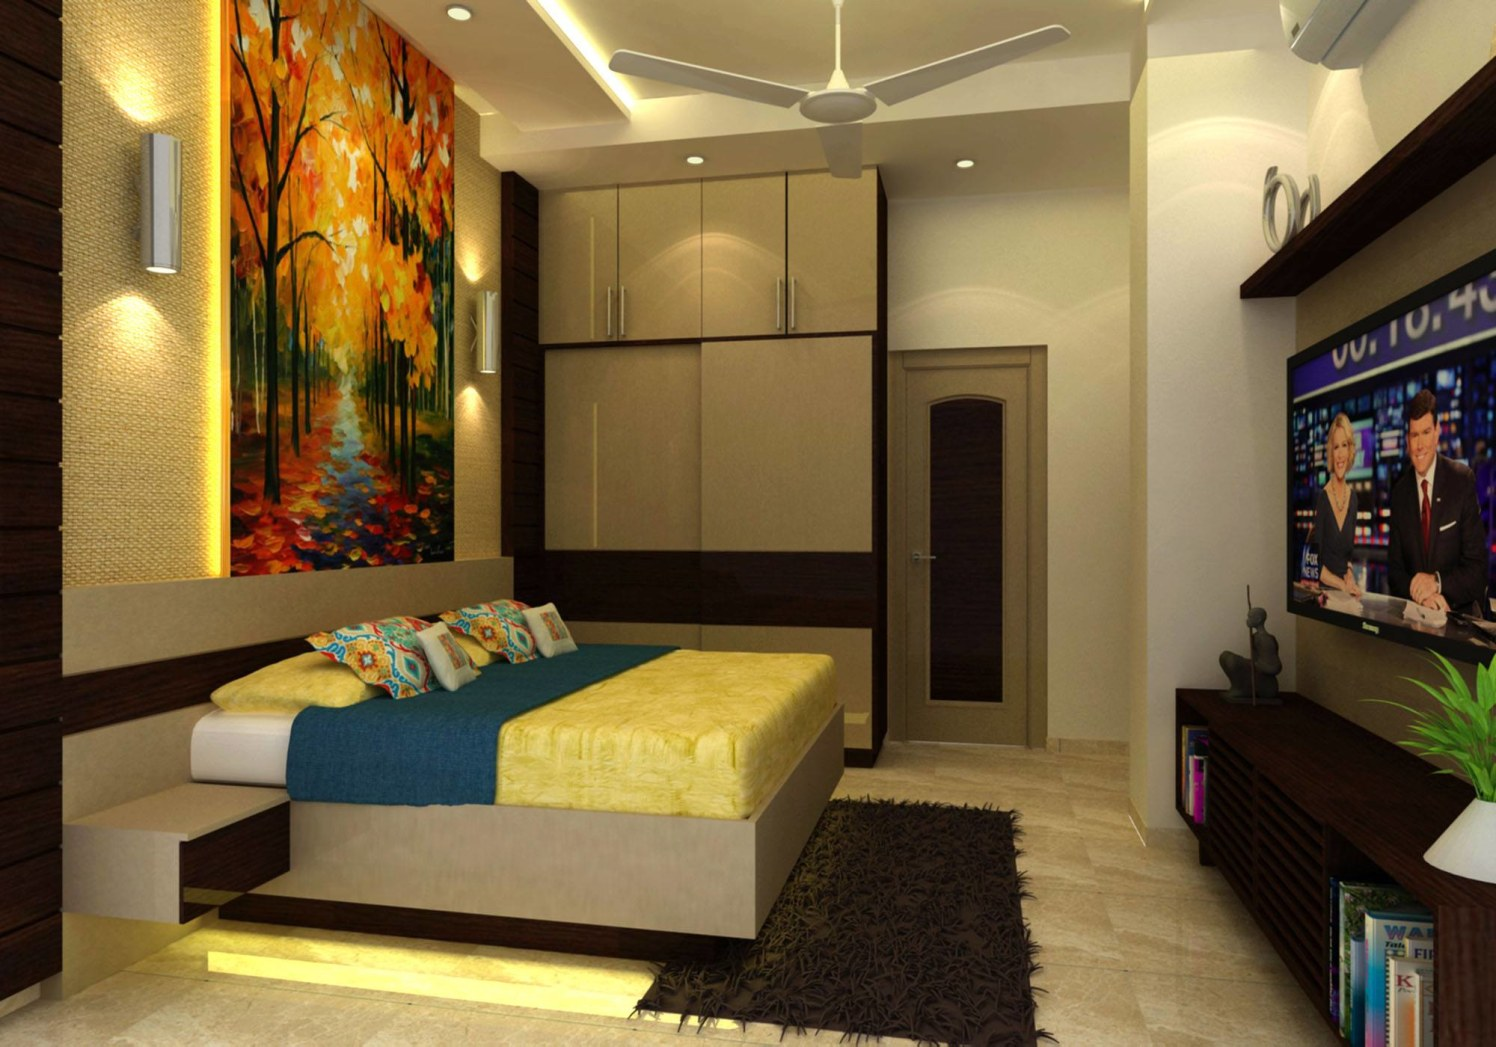 Beige Wooden Bed And Cupboard With Wall Lighting by Anjali Raghav Bedroom Contemporary | Interior Design Photos & Ideas